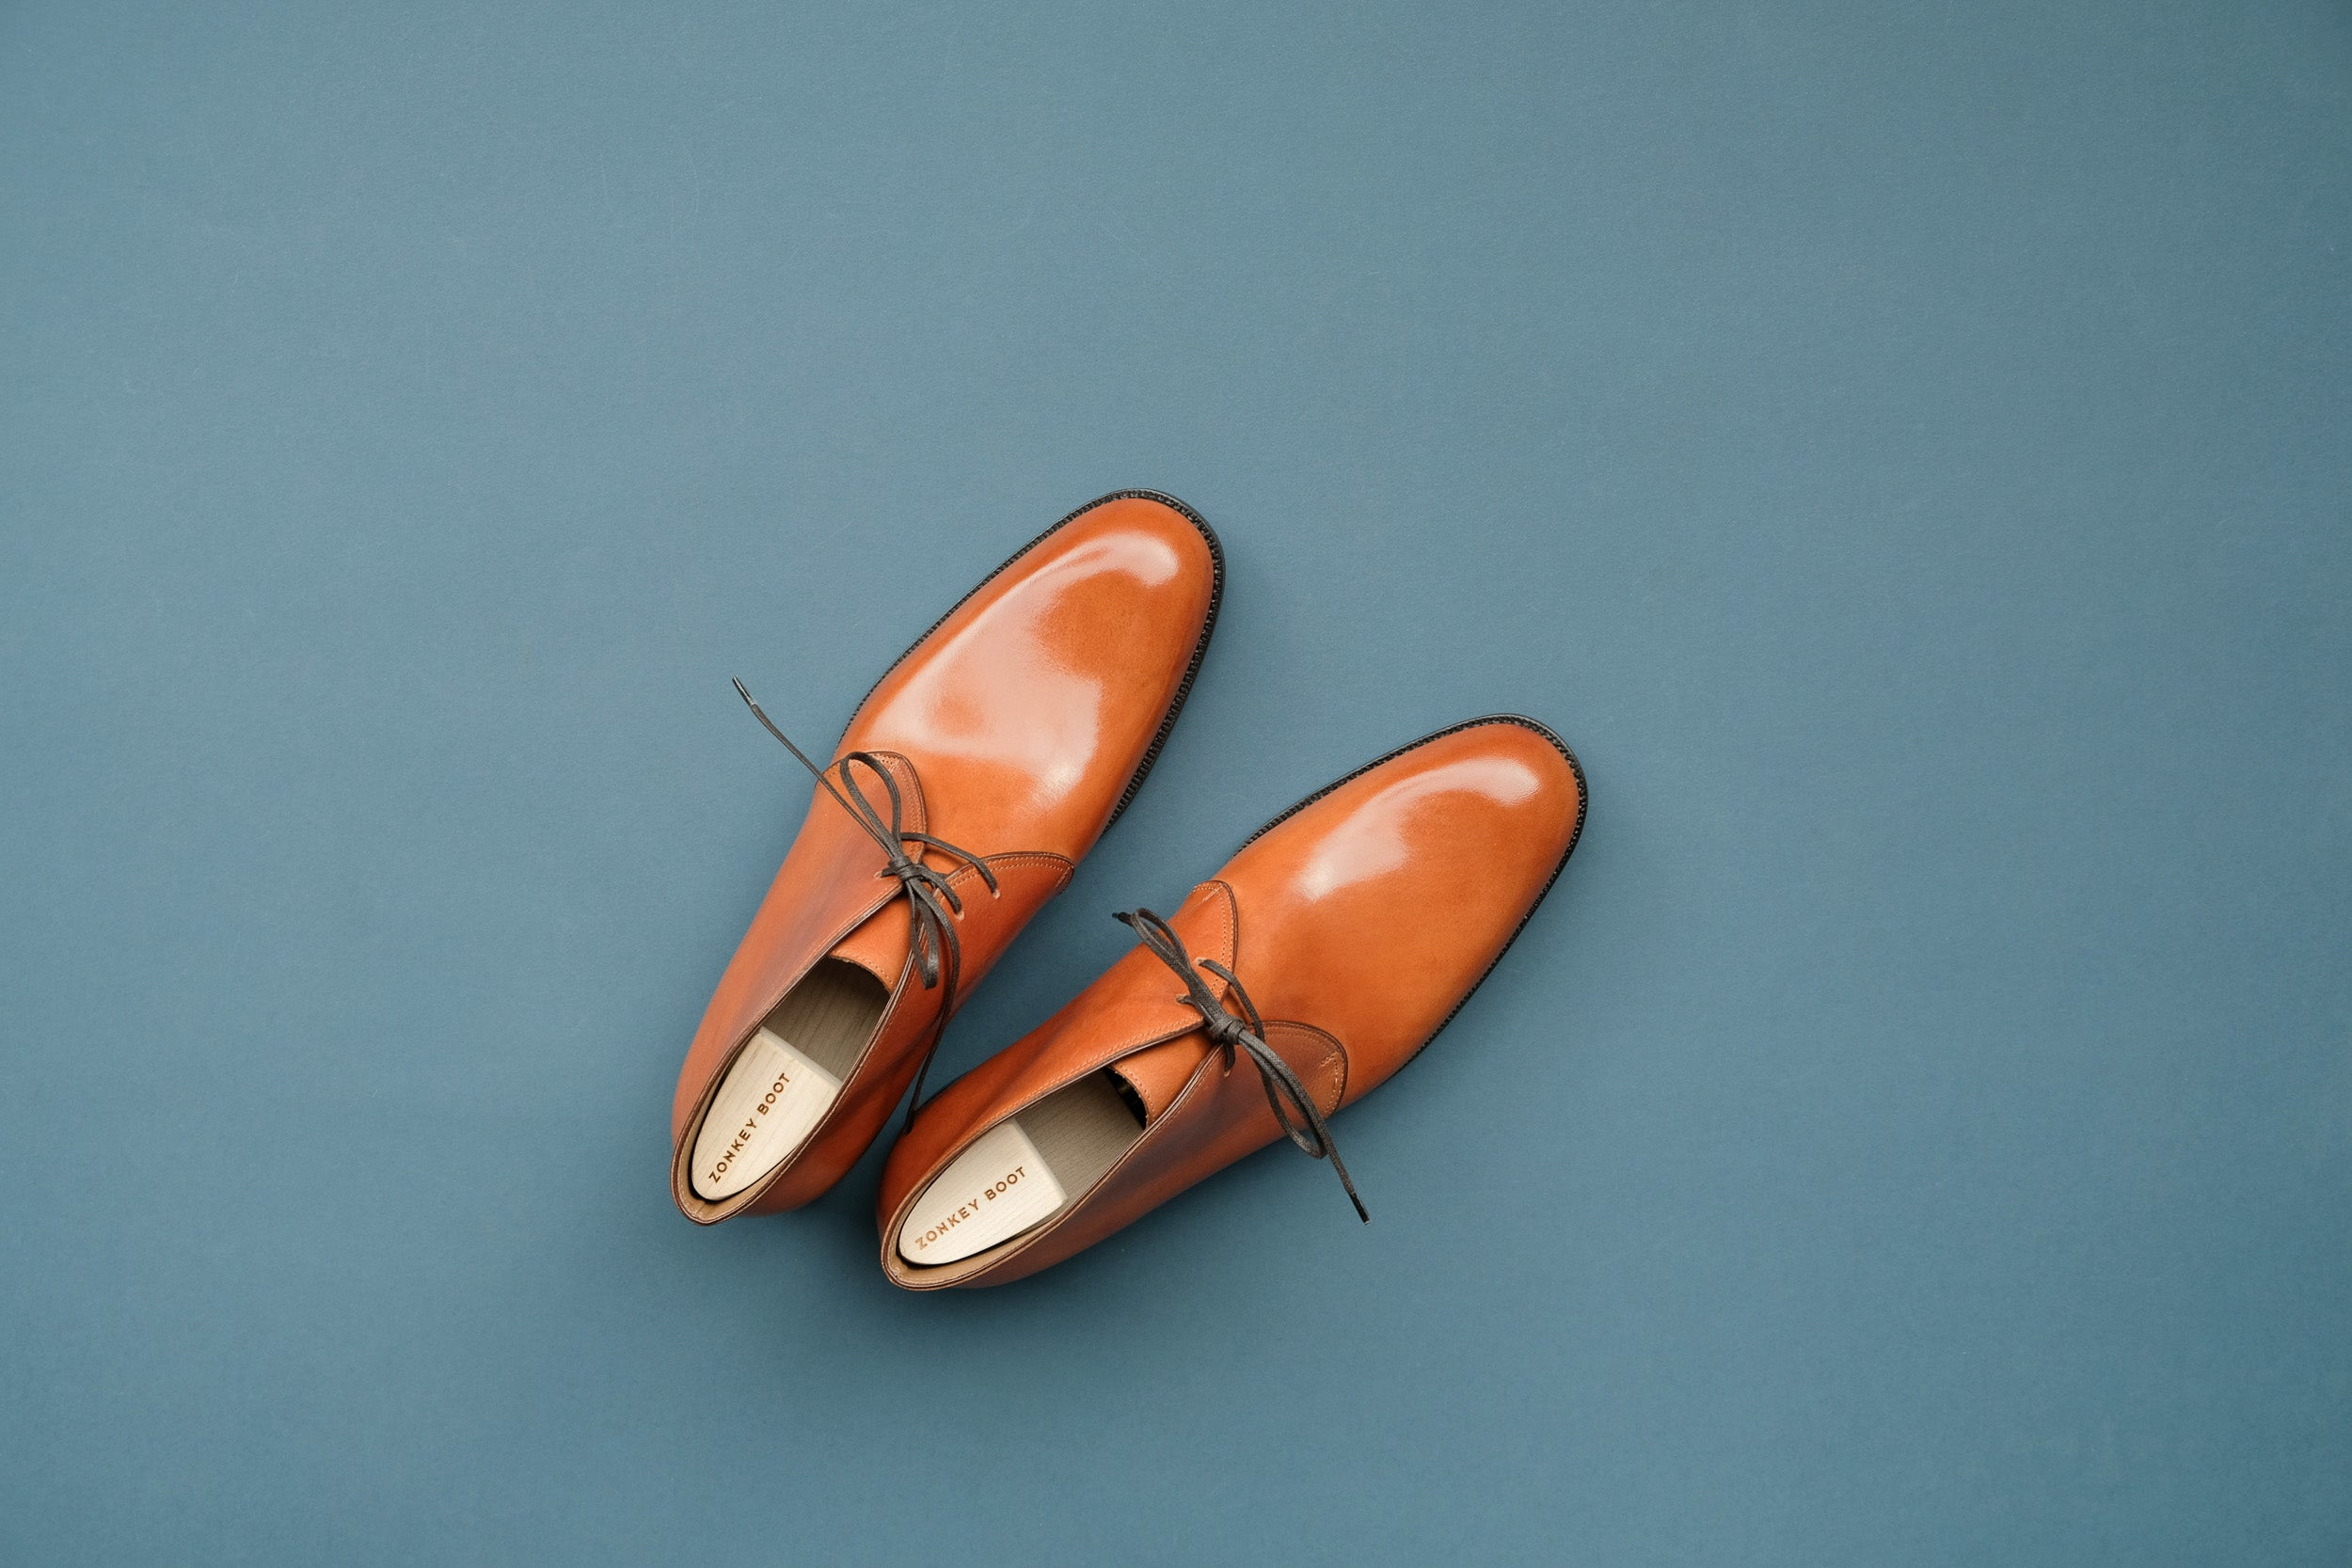 Zonkey Boot hand welted chukka boots from vegetable tanned bovine leather